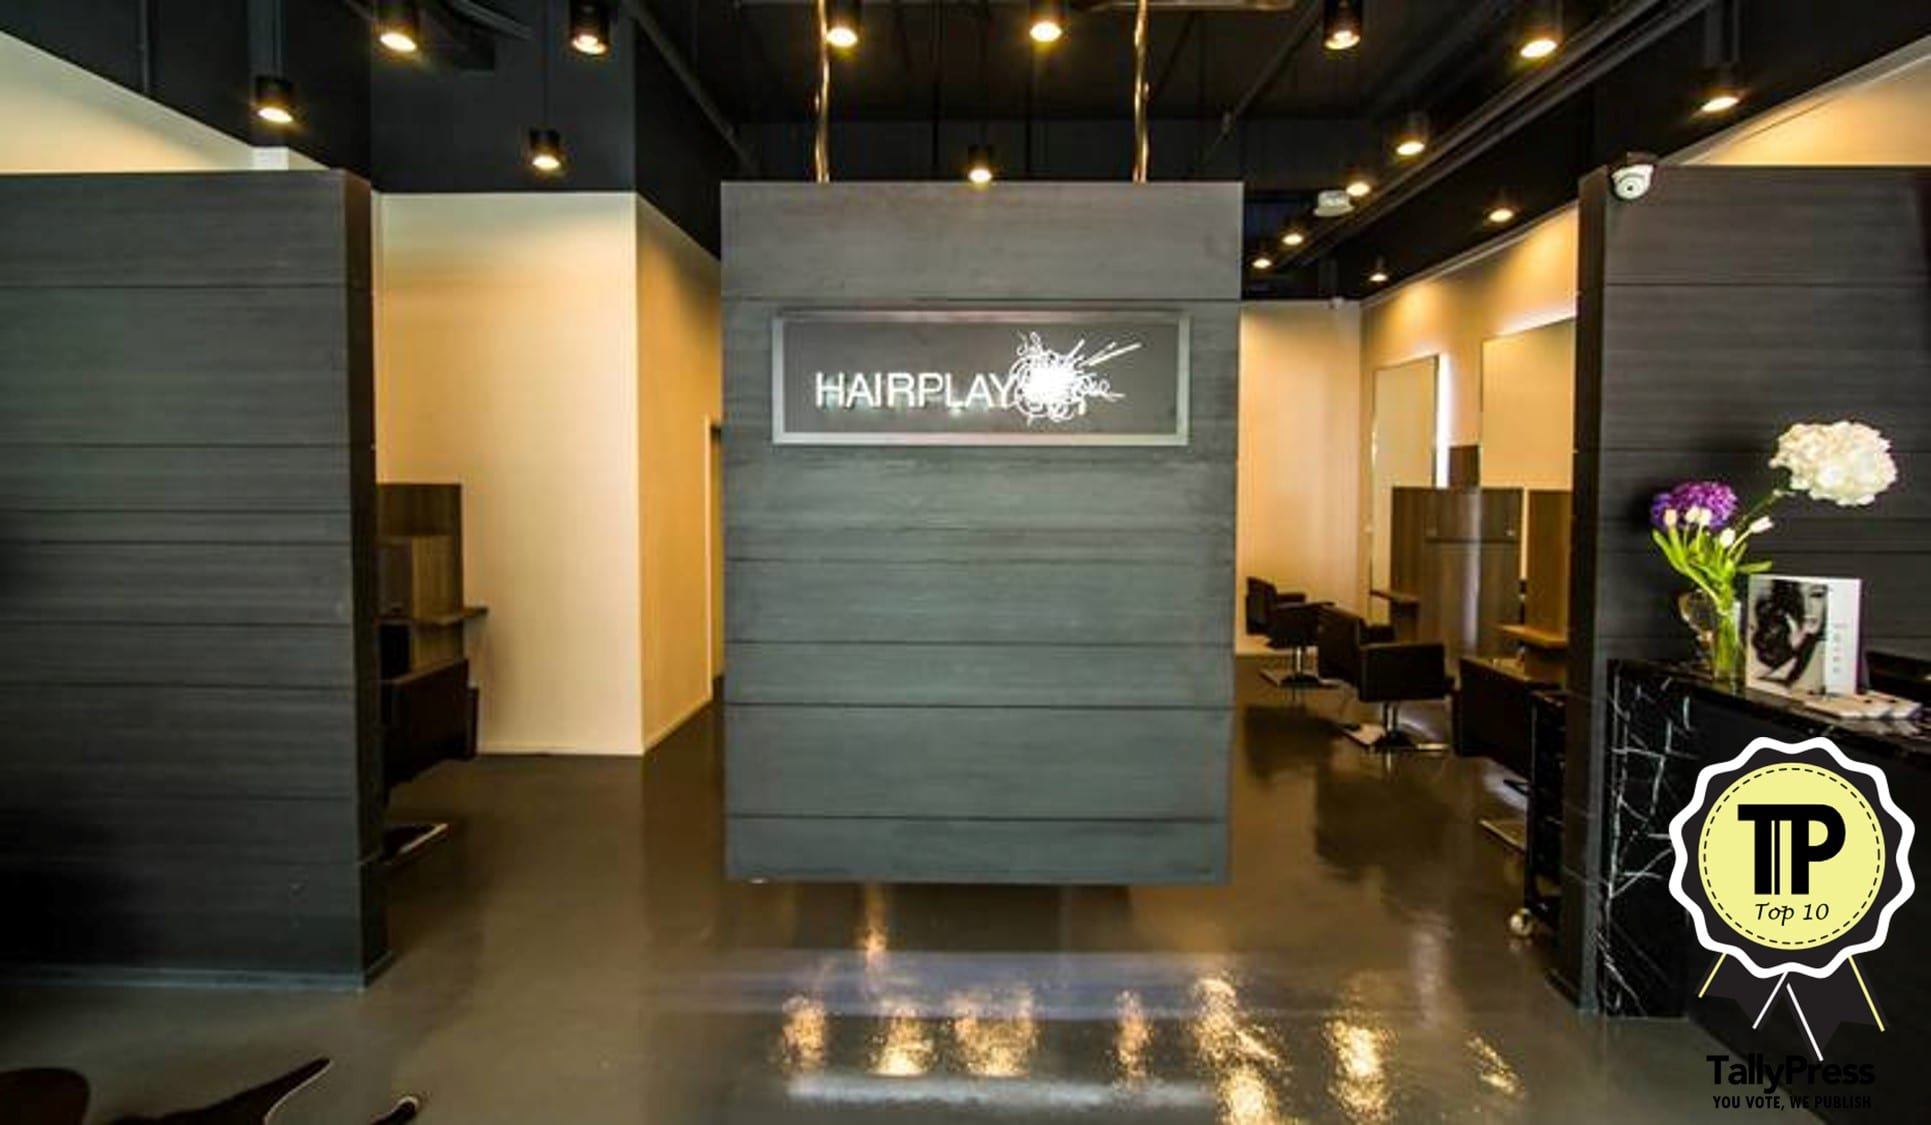 7-hairplay-salon-malaysia-top-10-hair-salons